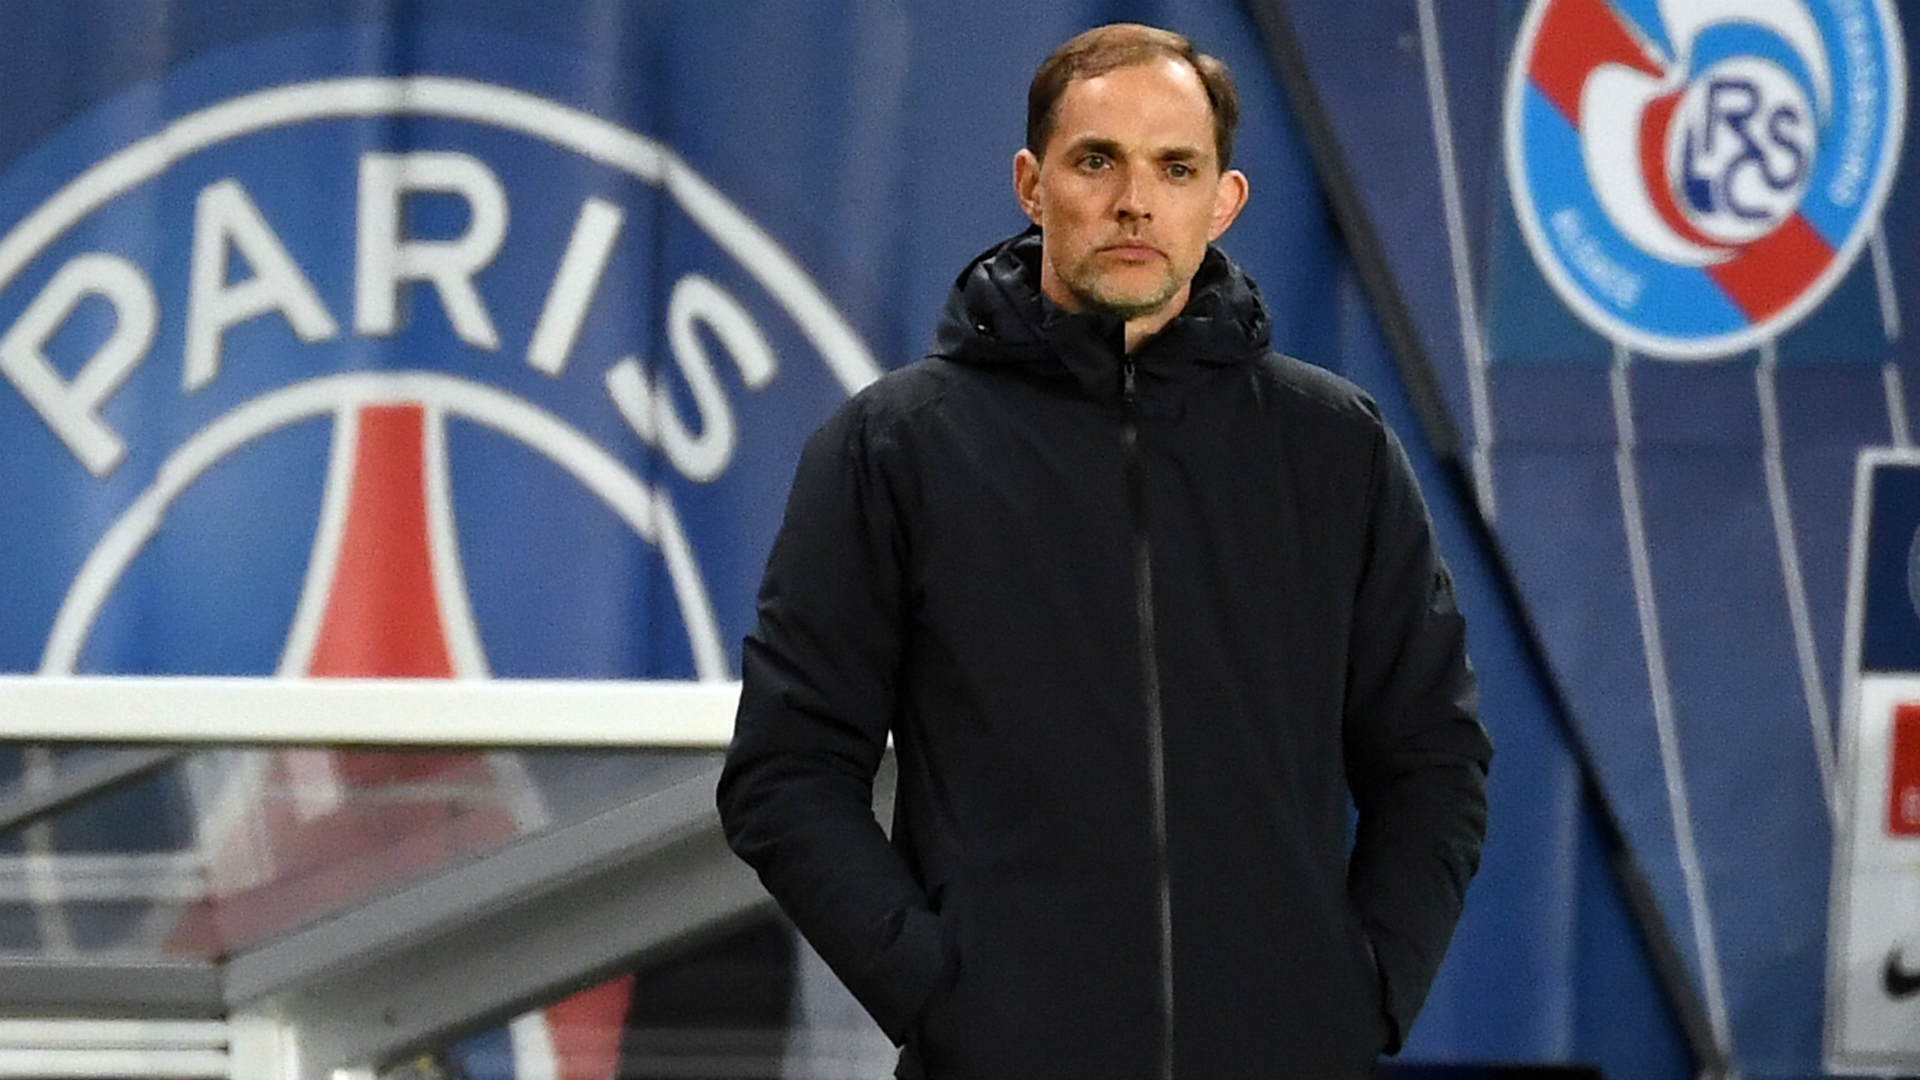 PSG required a late cameo from Kylian Mbappe on his return from injury to secure three points against Nice at Allianz Riviera.